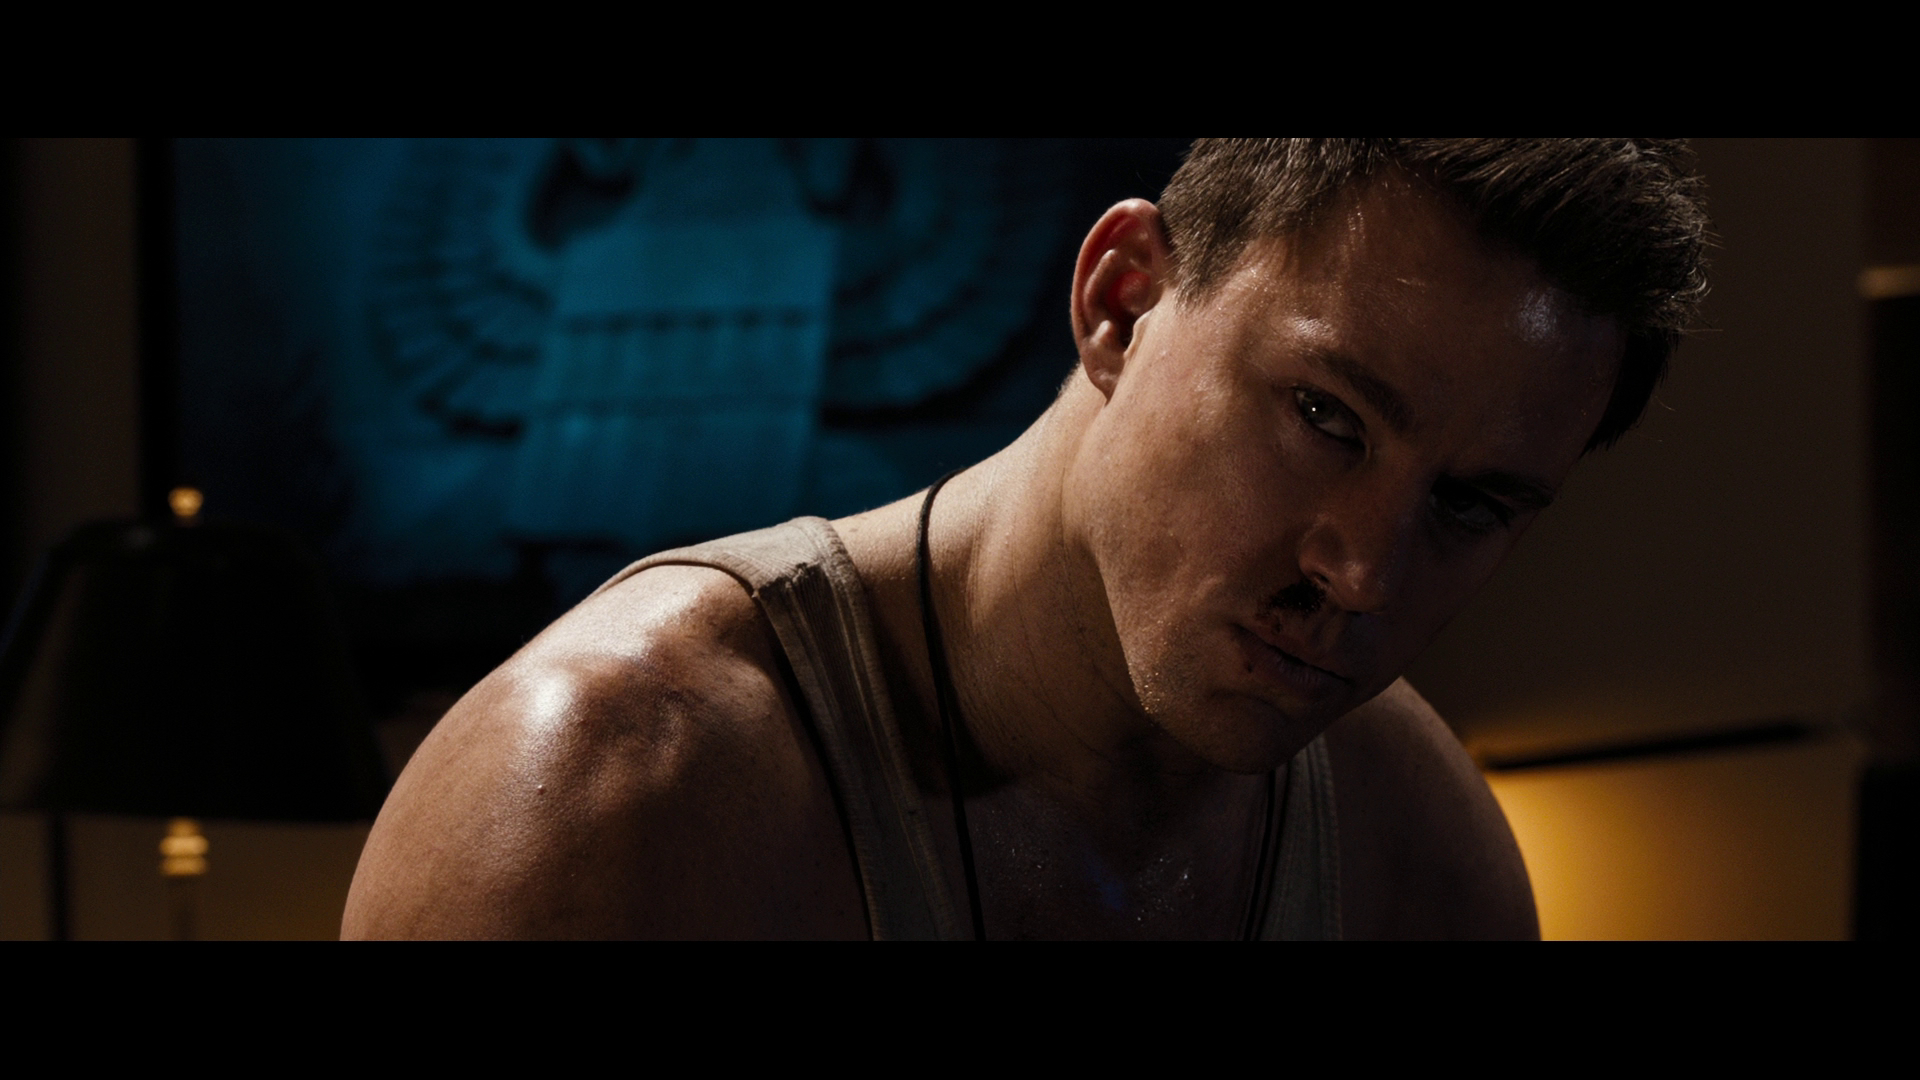 White House Down Blu ray DVD Talk Review of the Blu ray